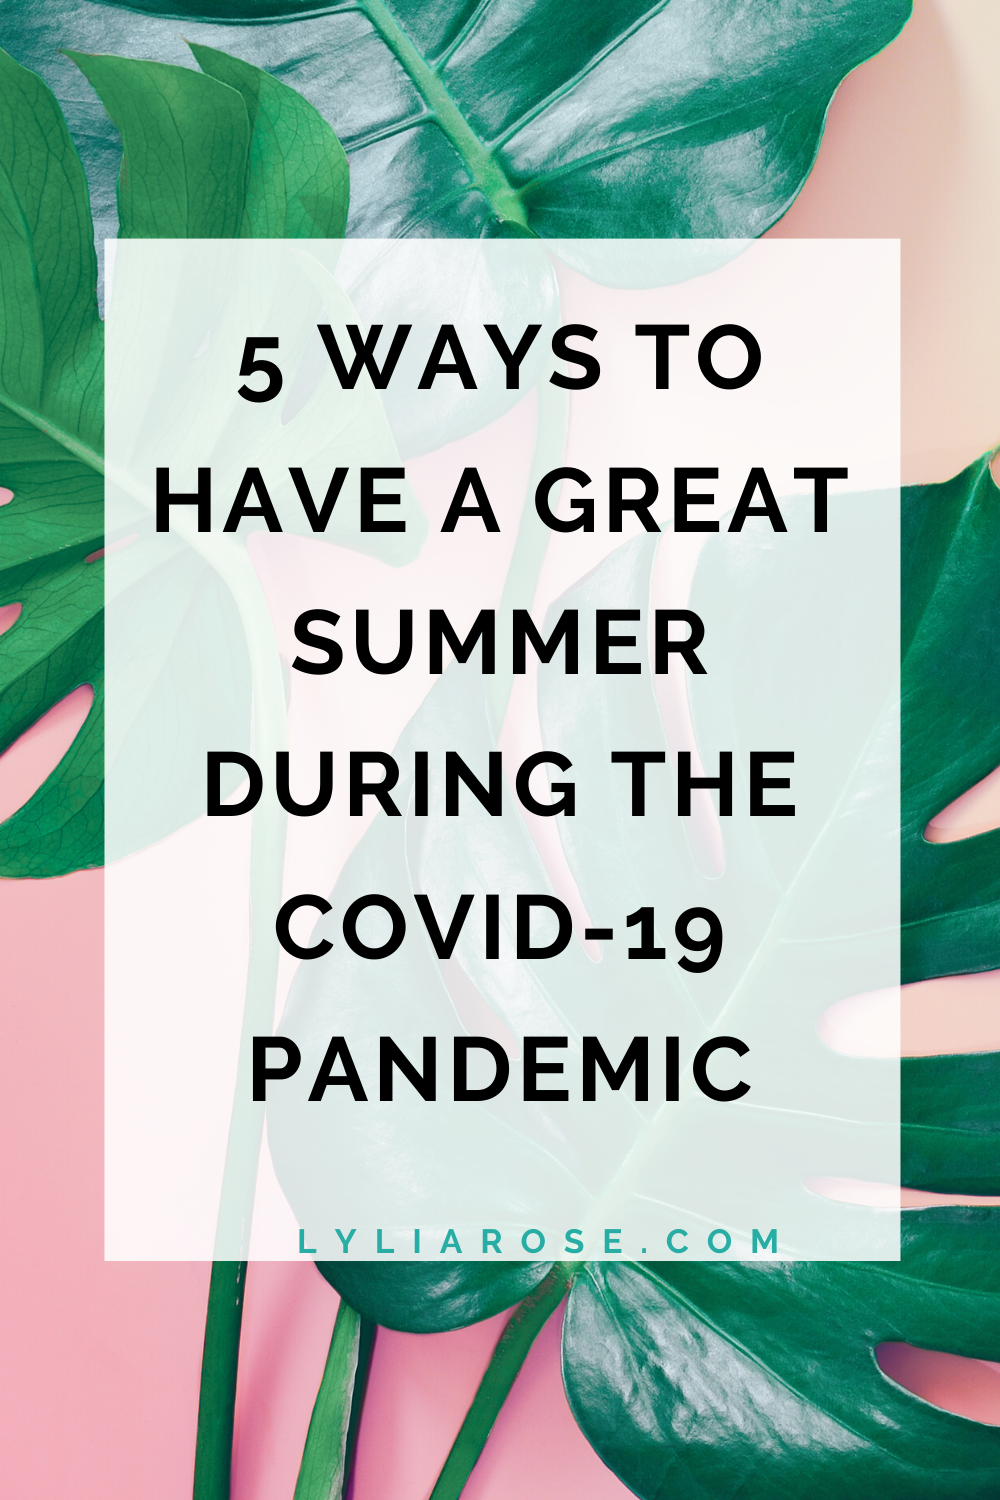 5 ways to have a great summer during the covid-19 pandemic (1)